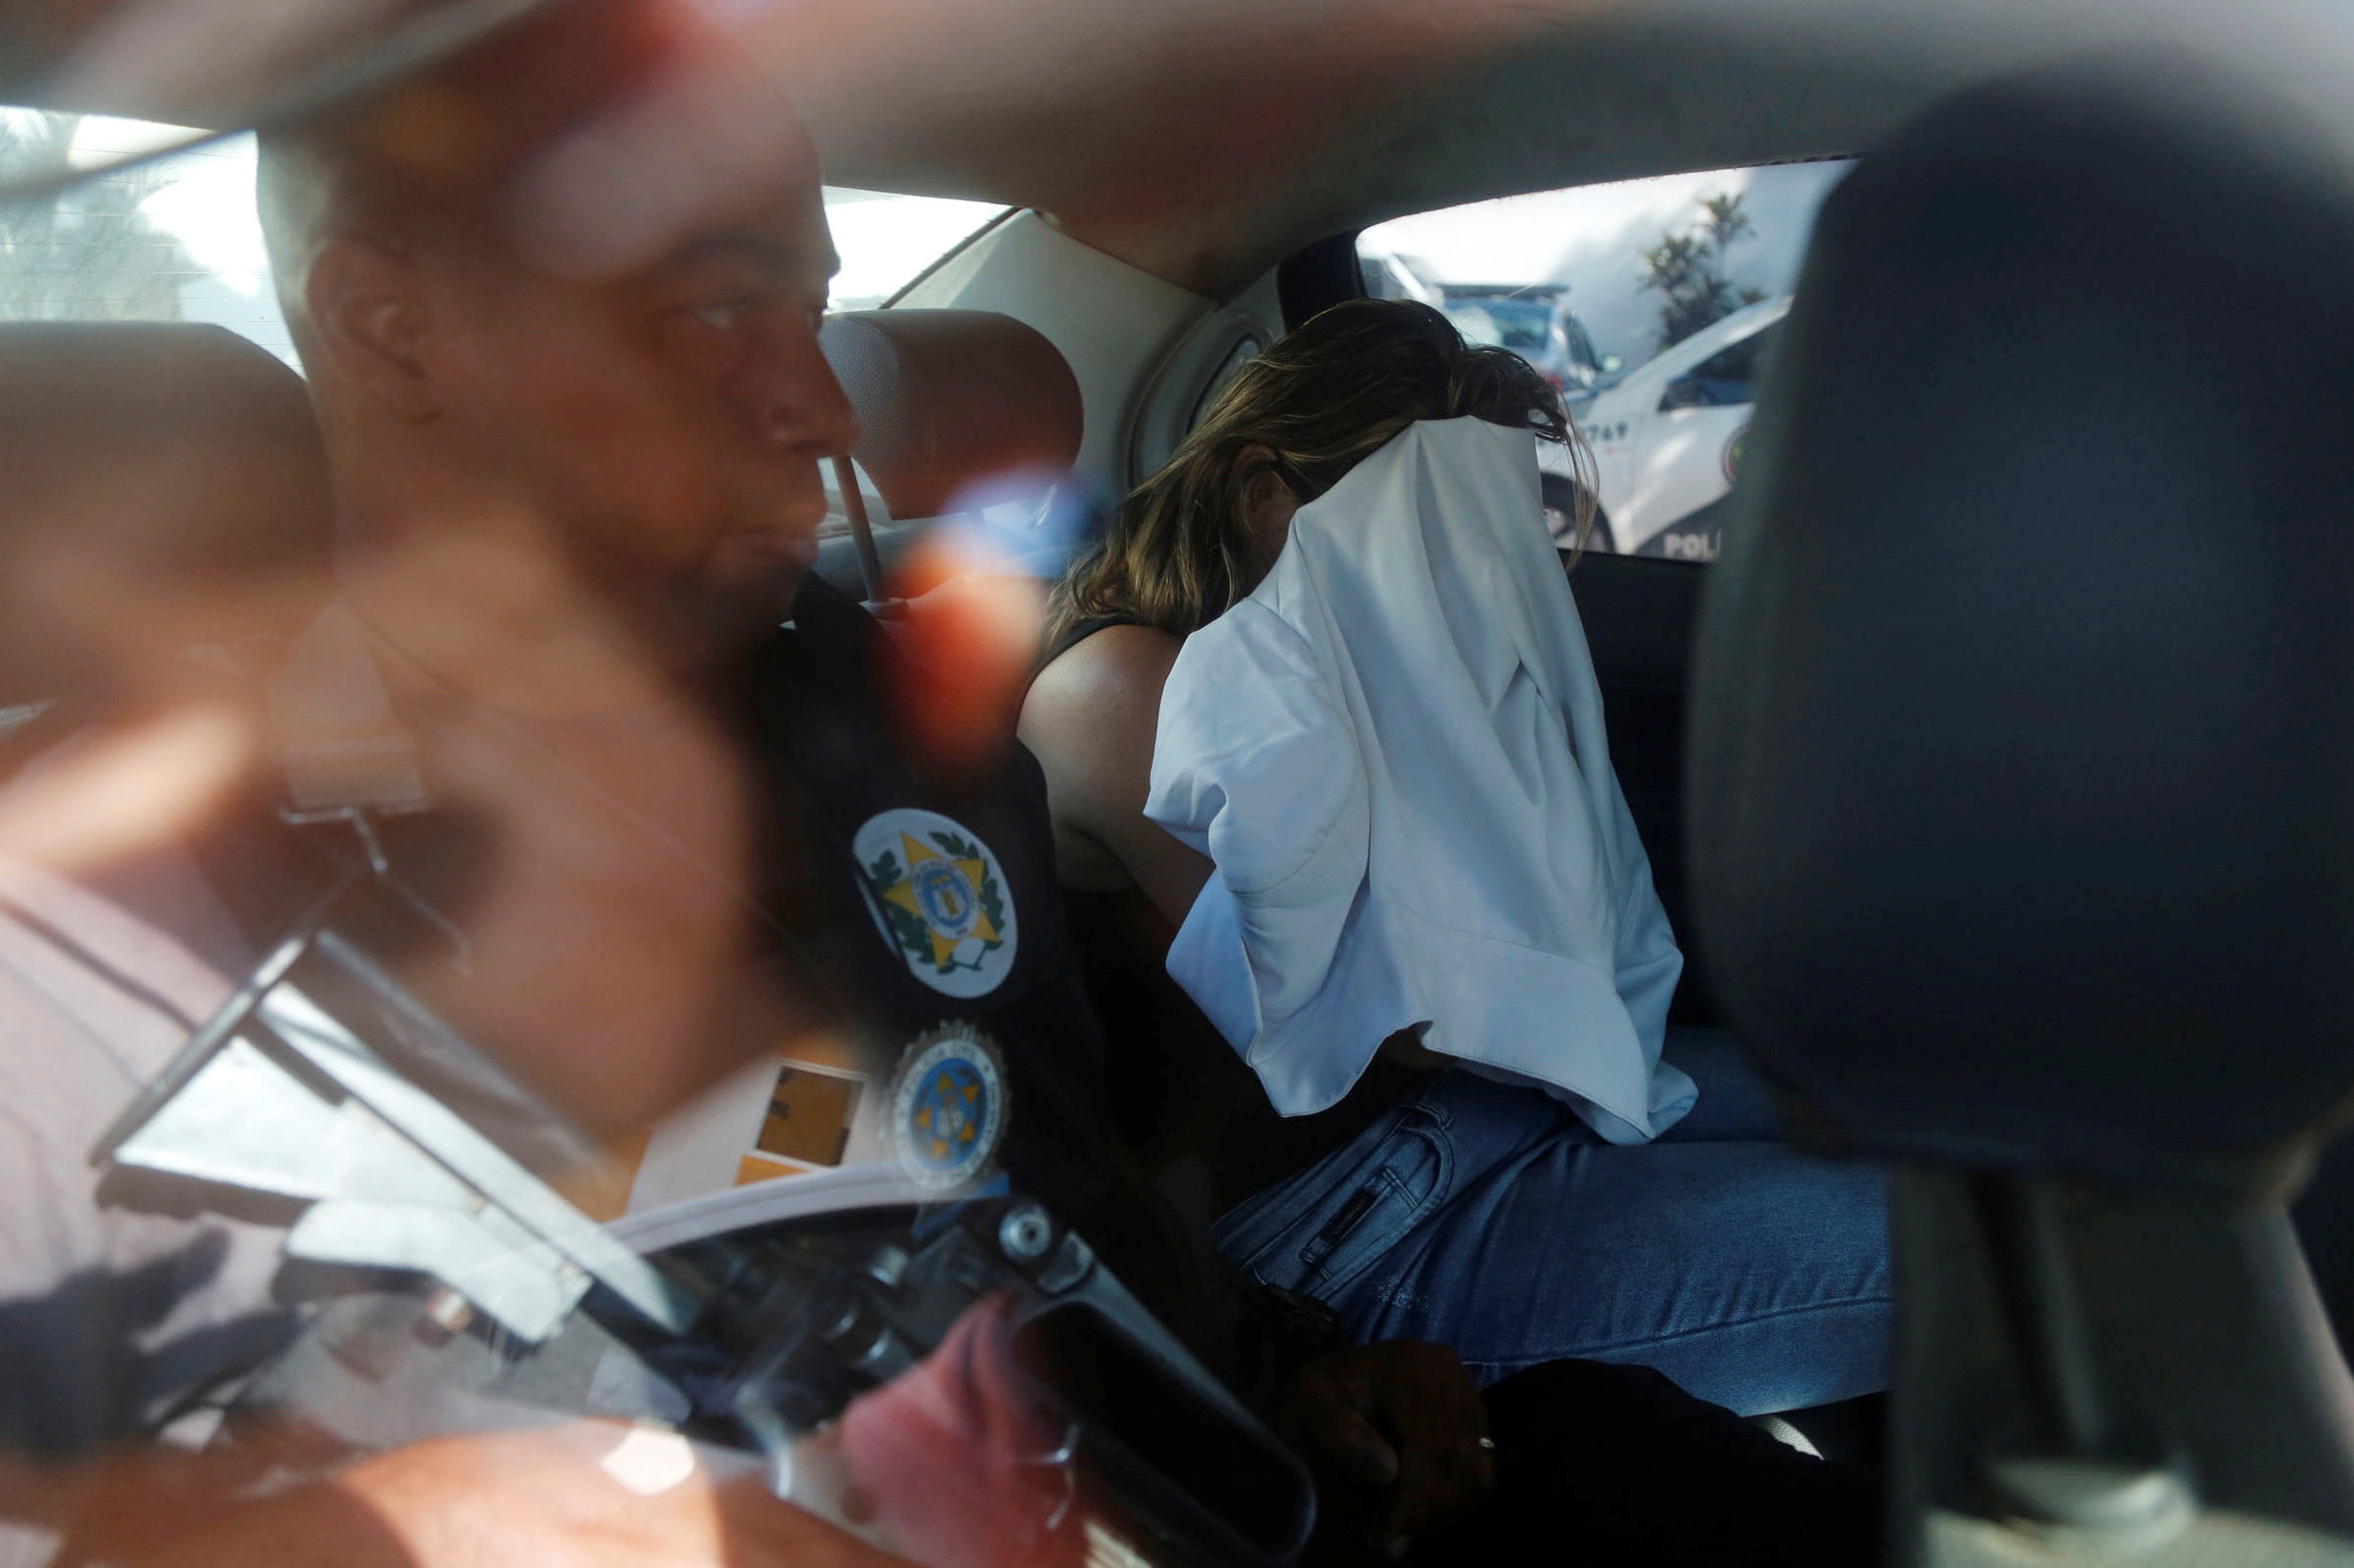 Francoise Souza Oliveira, 40, wife of Greek Ambassador for Brazil Kyriakos Amiridis, is escorted by police officers as she is transferred from the police station to a jail in Belford Roxo, Brazil December 31, 2016. REUTERS/Marcos de Paula FOR EDITORIAL USE ONLY. NO RESALES. NO ARCHIVES